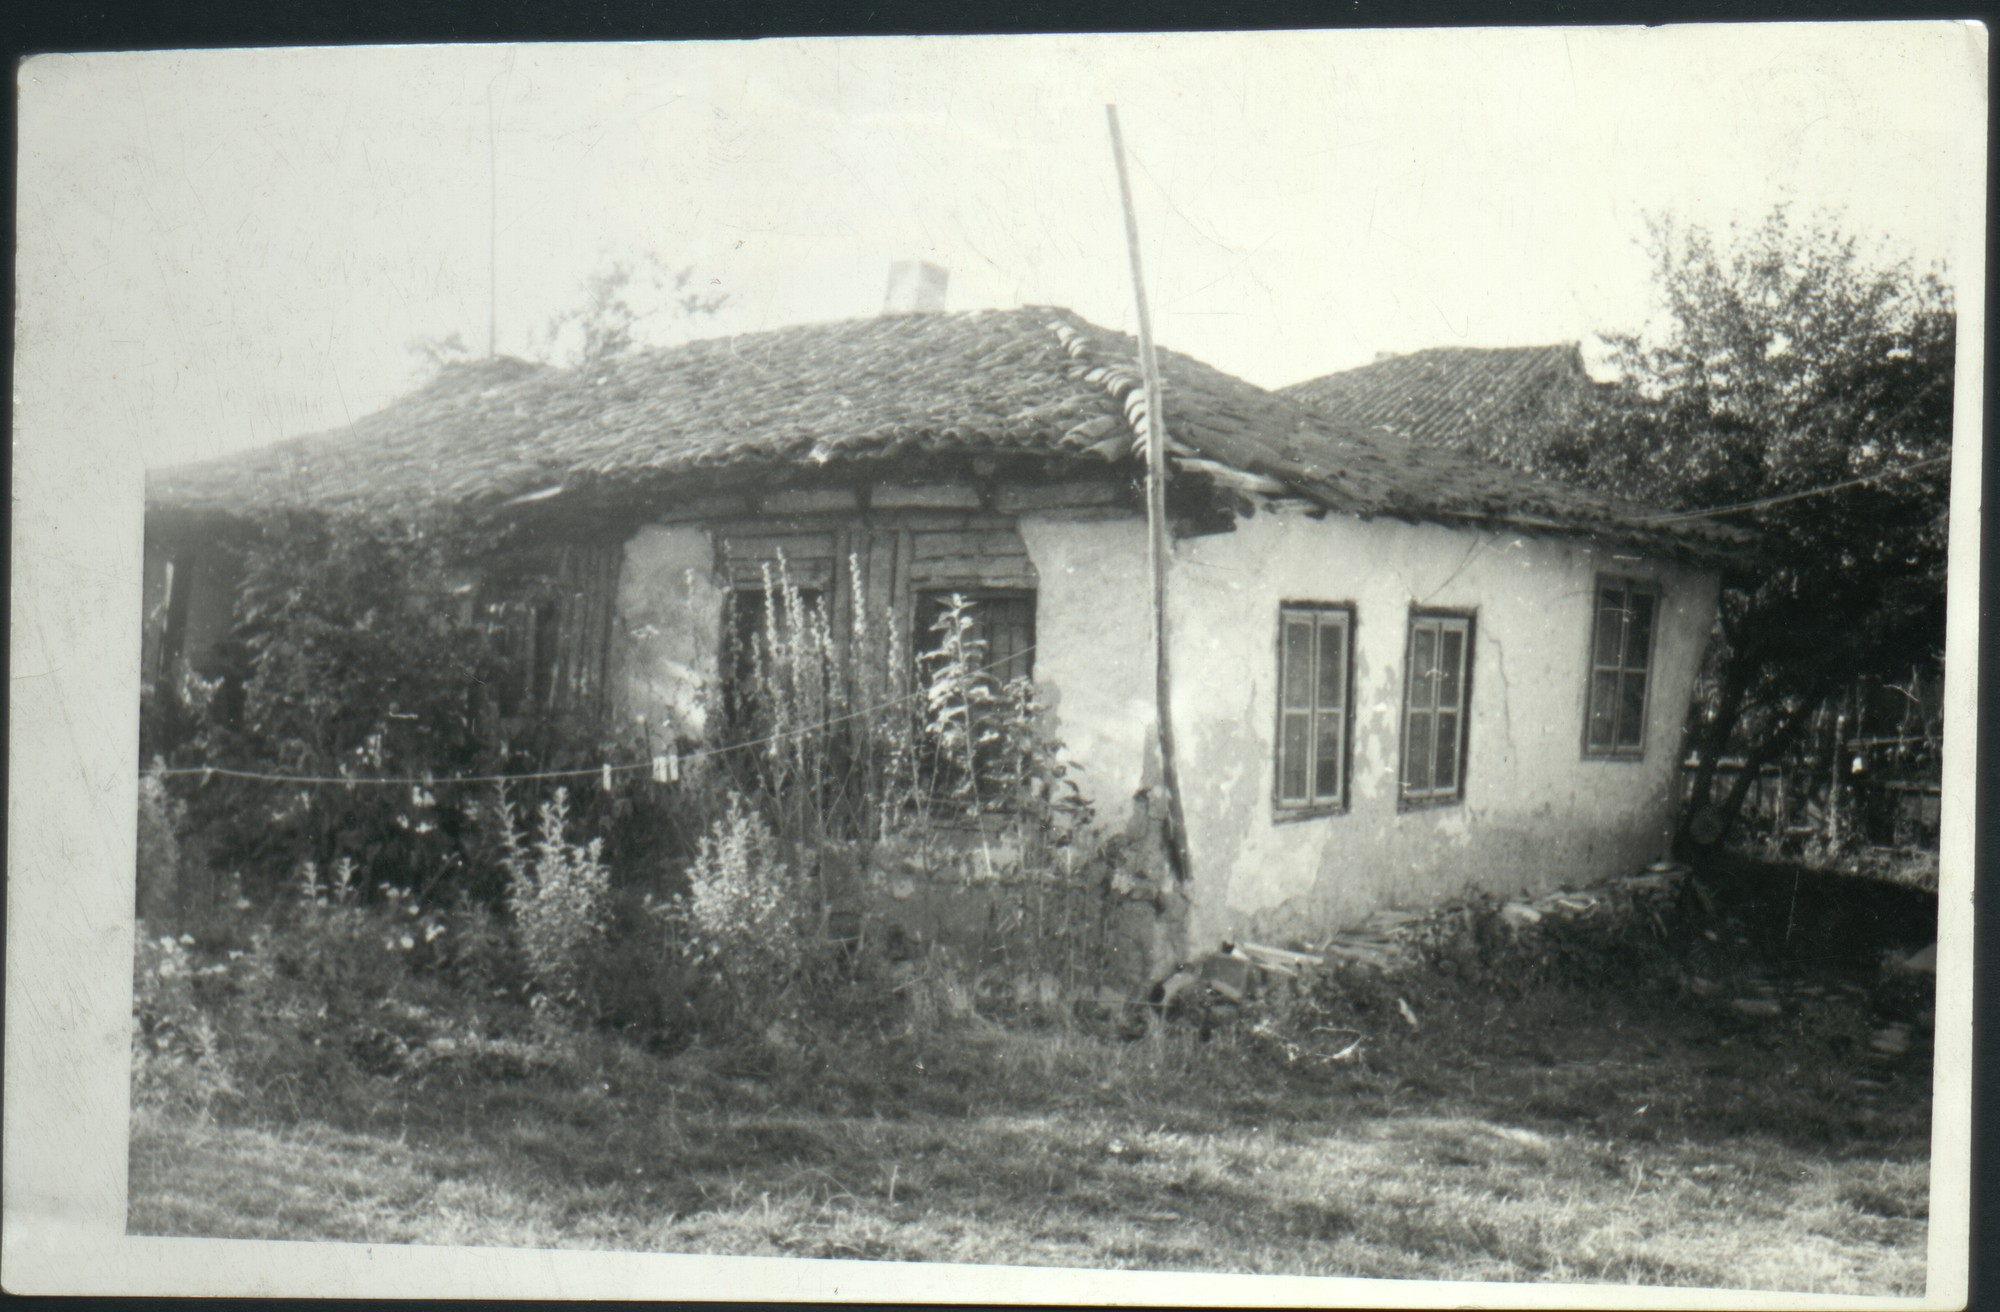 The house of the printer Karastoyanov in Samokov, © St. Cyril and St. Methodius National Library